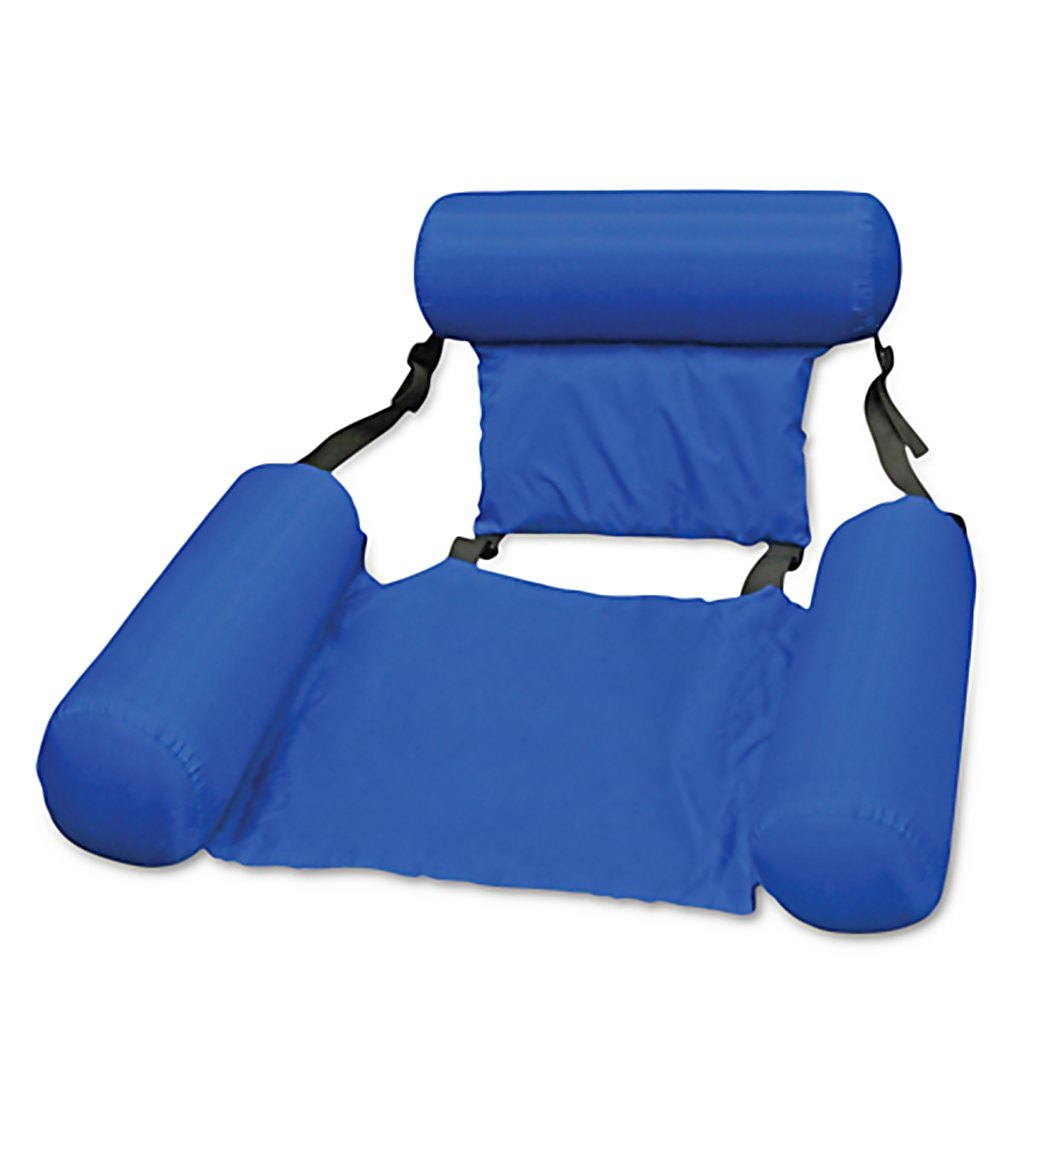 hammock swimming stock lounger photo bed and float floating pool suncliner poolmaster water sleeping